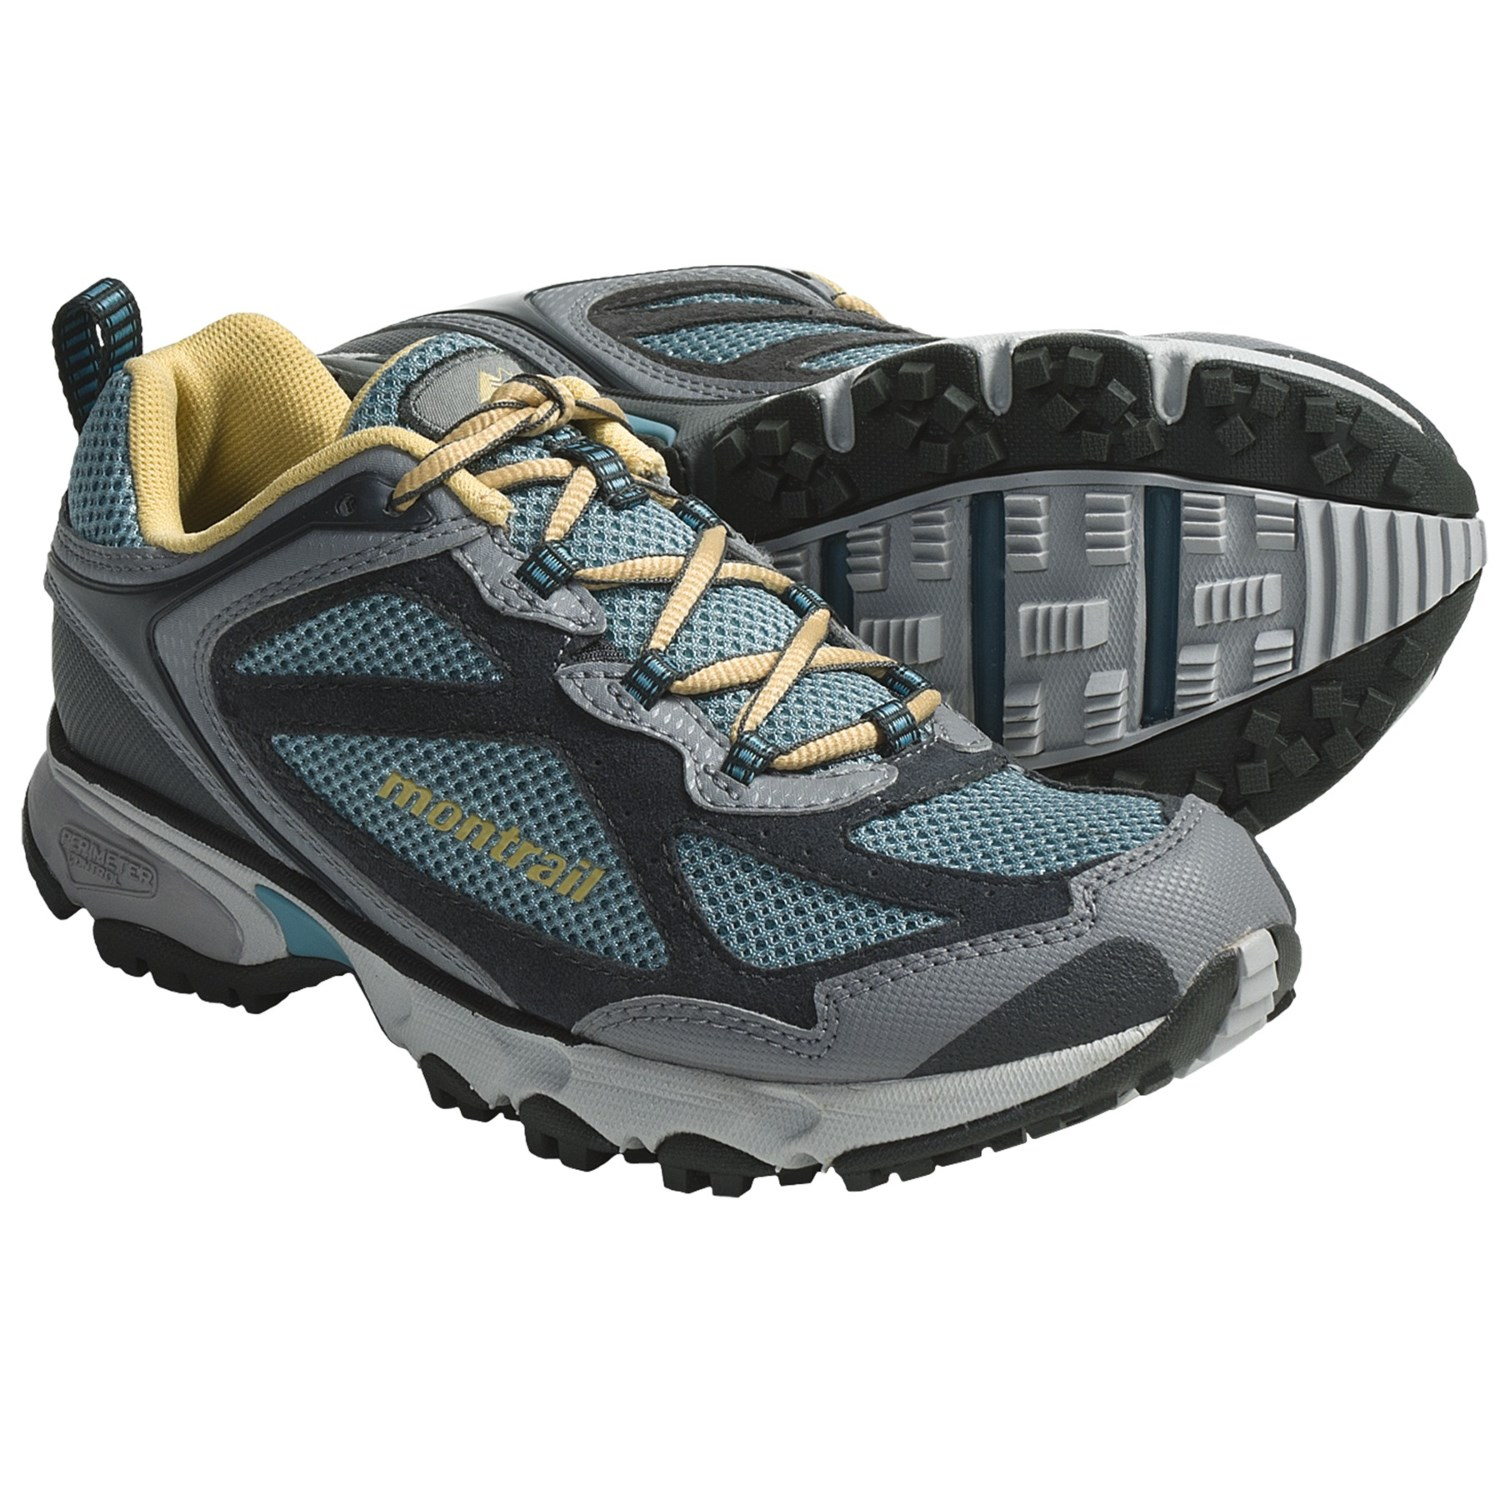 Montrail Badrock Mid Outdry Women's Trail Shoes - 5.5